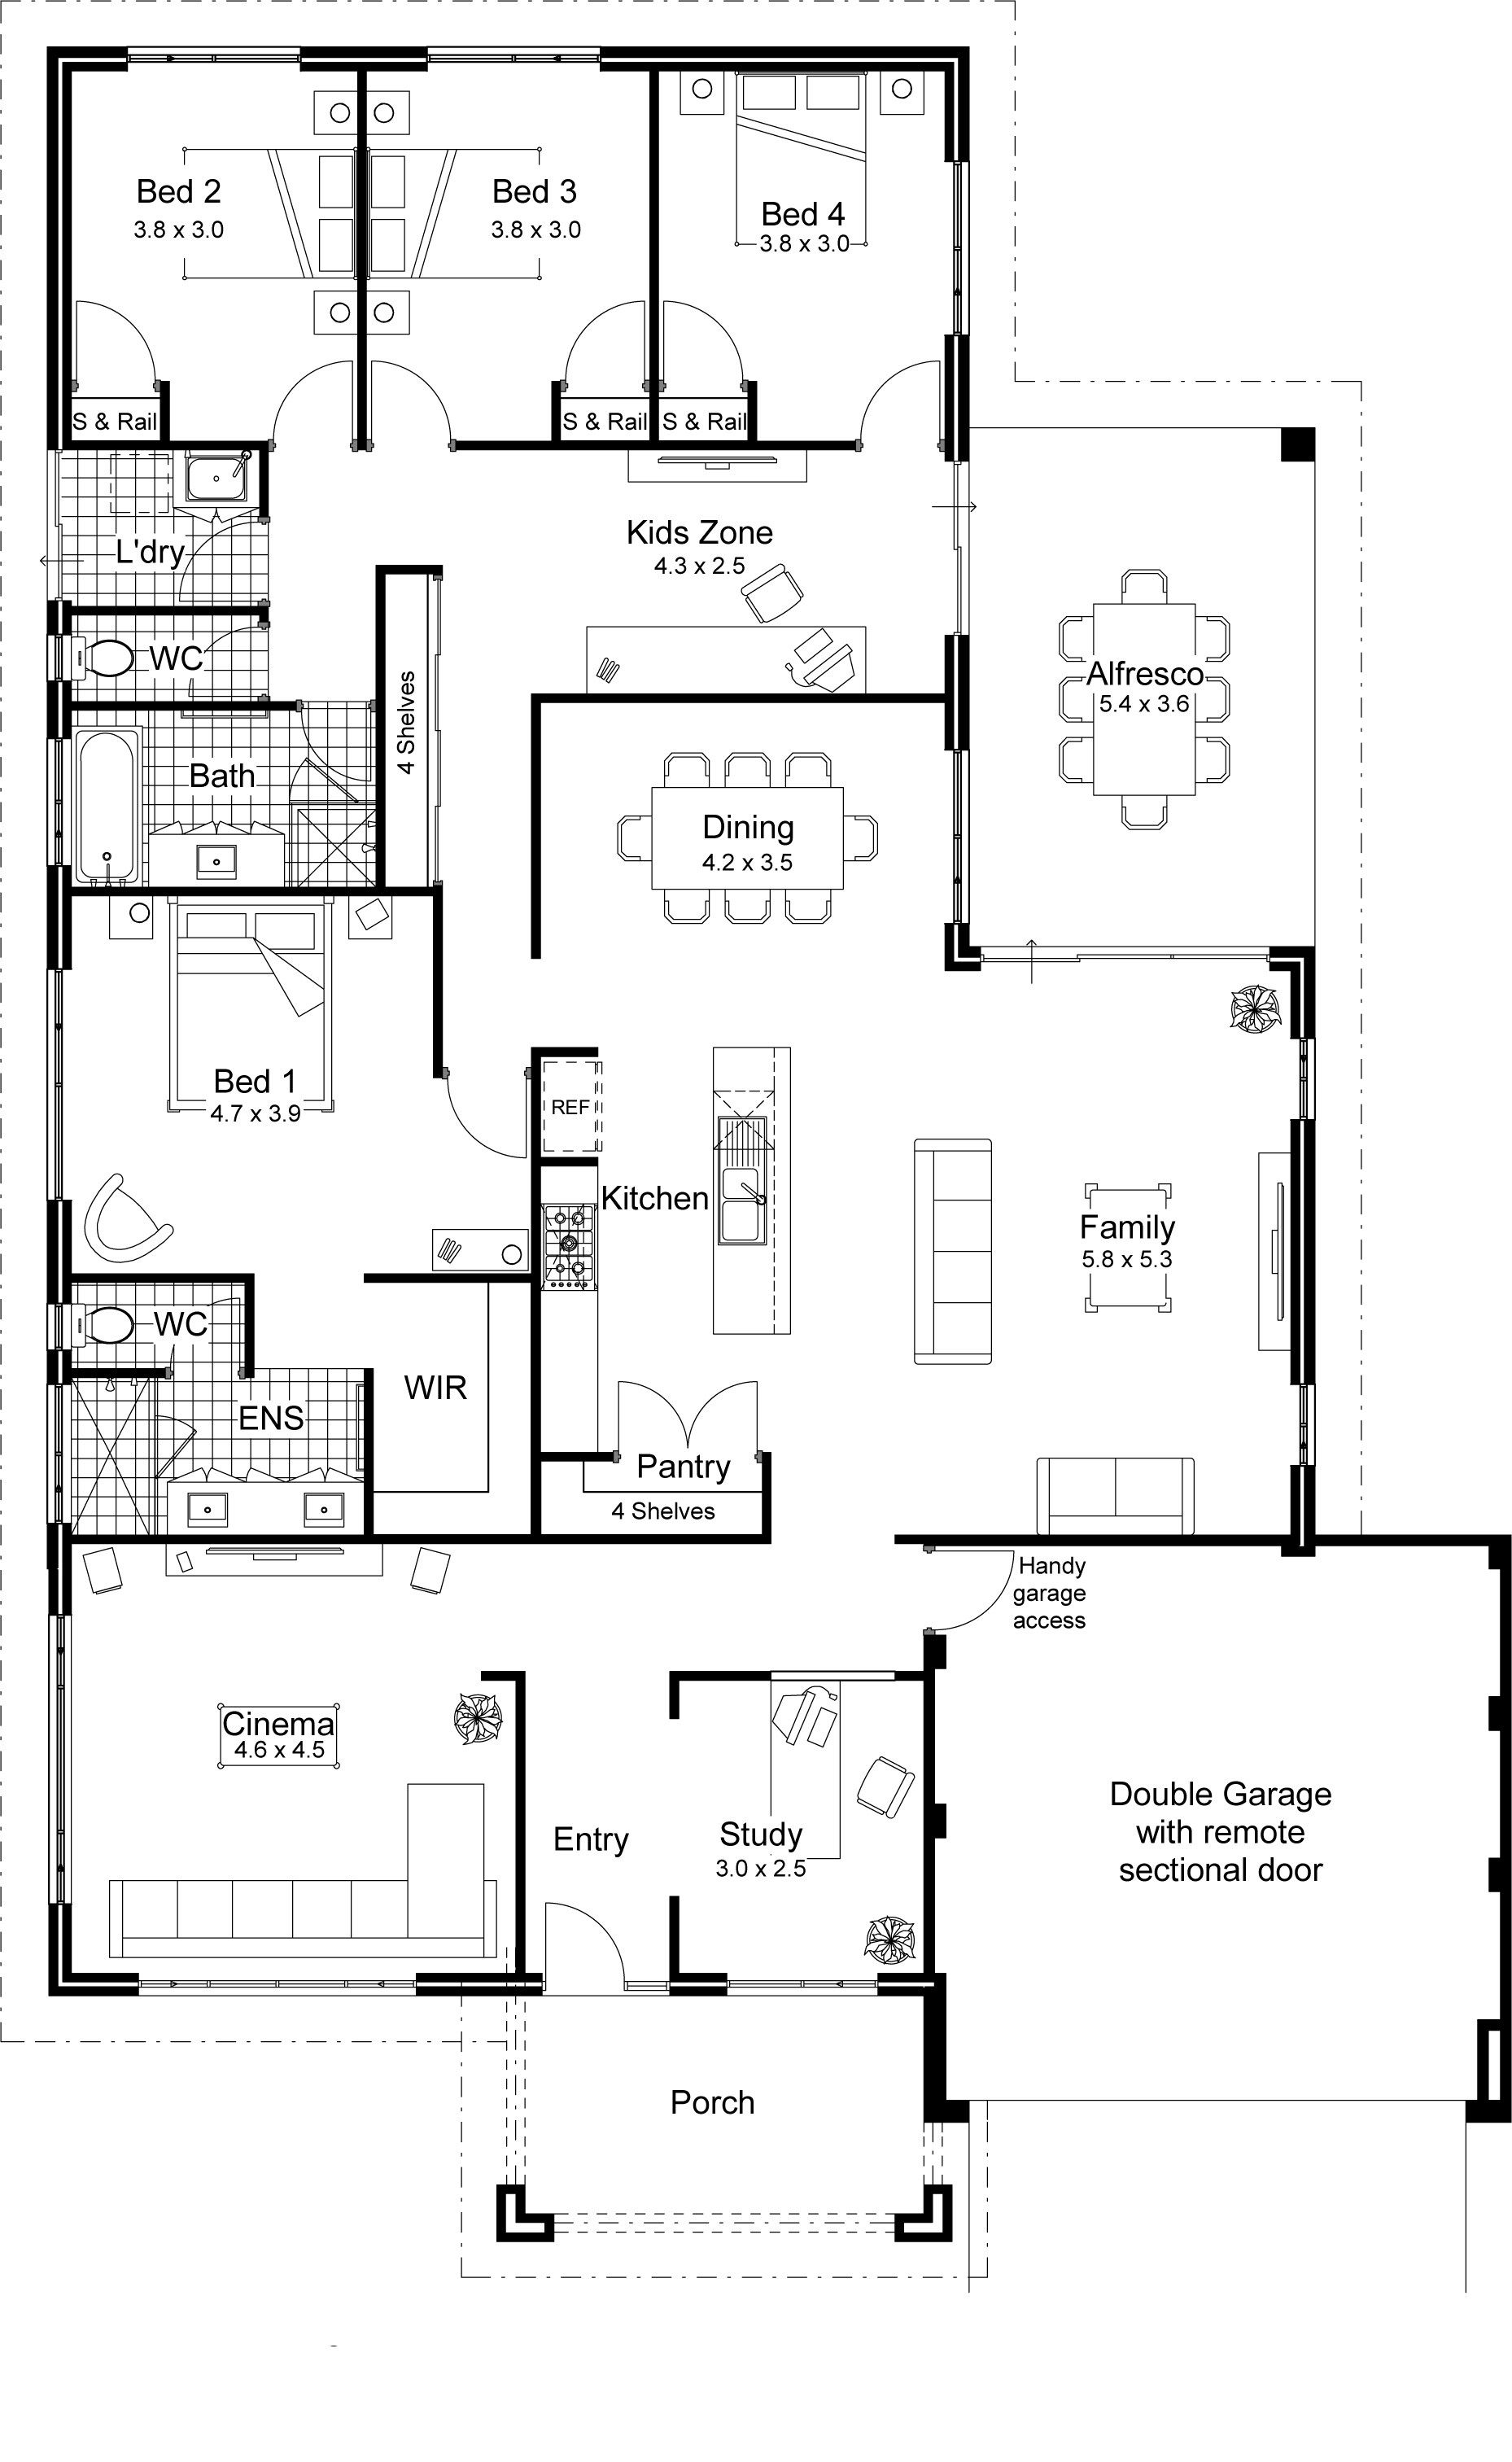 Plan Ideas Home Kits Cabin Plans Floor Plan Pool House